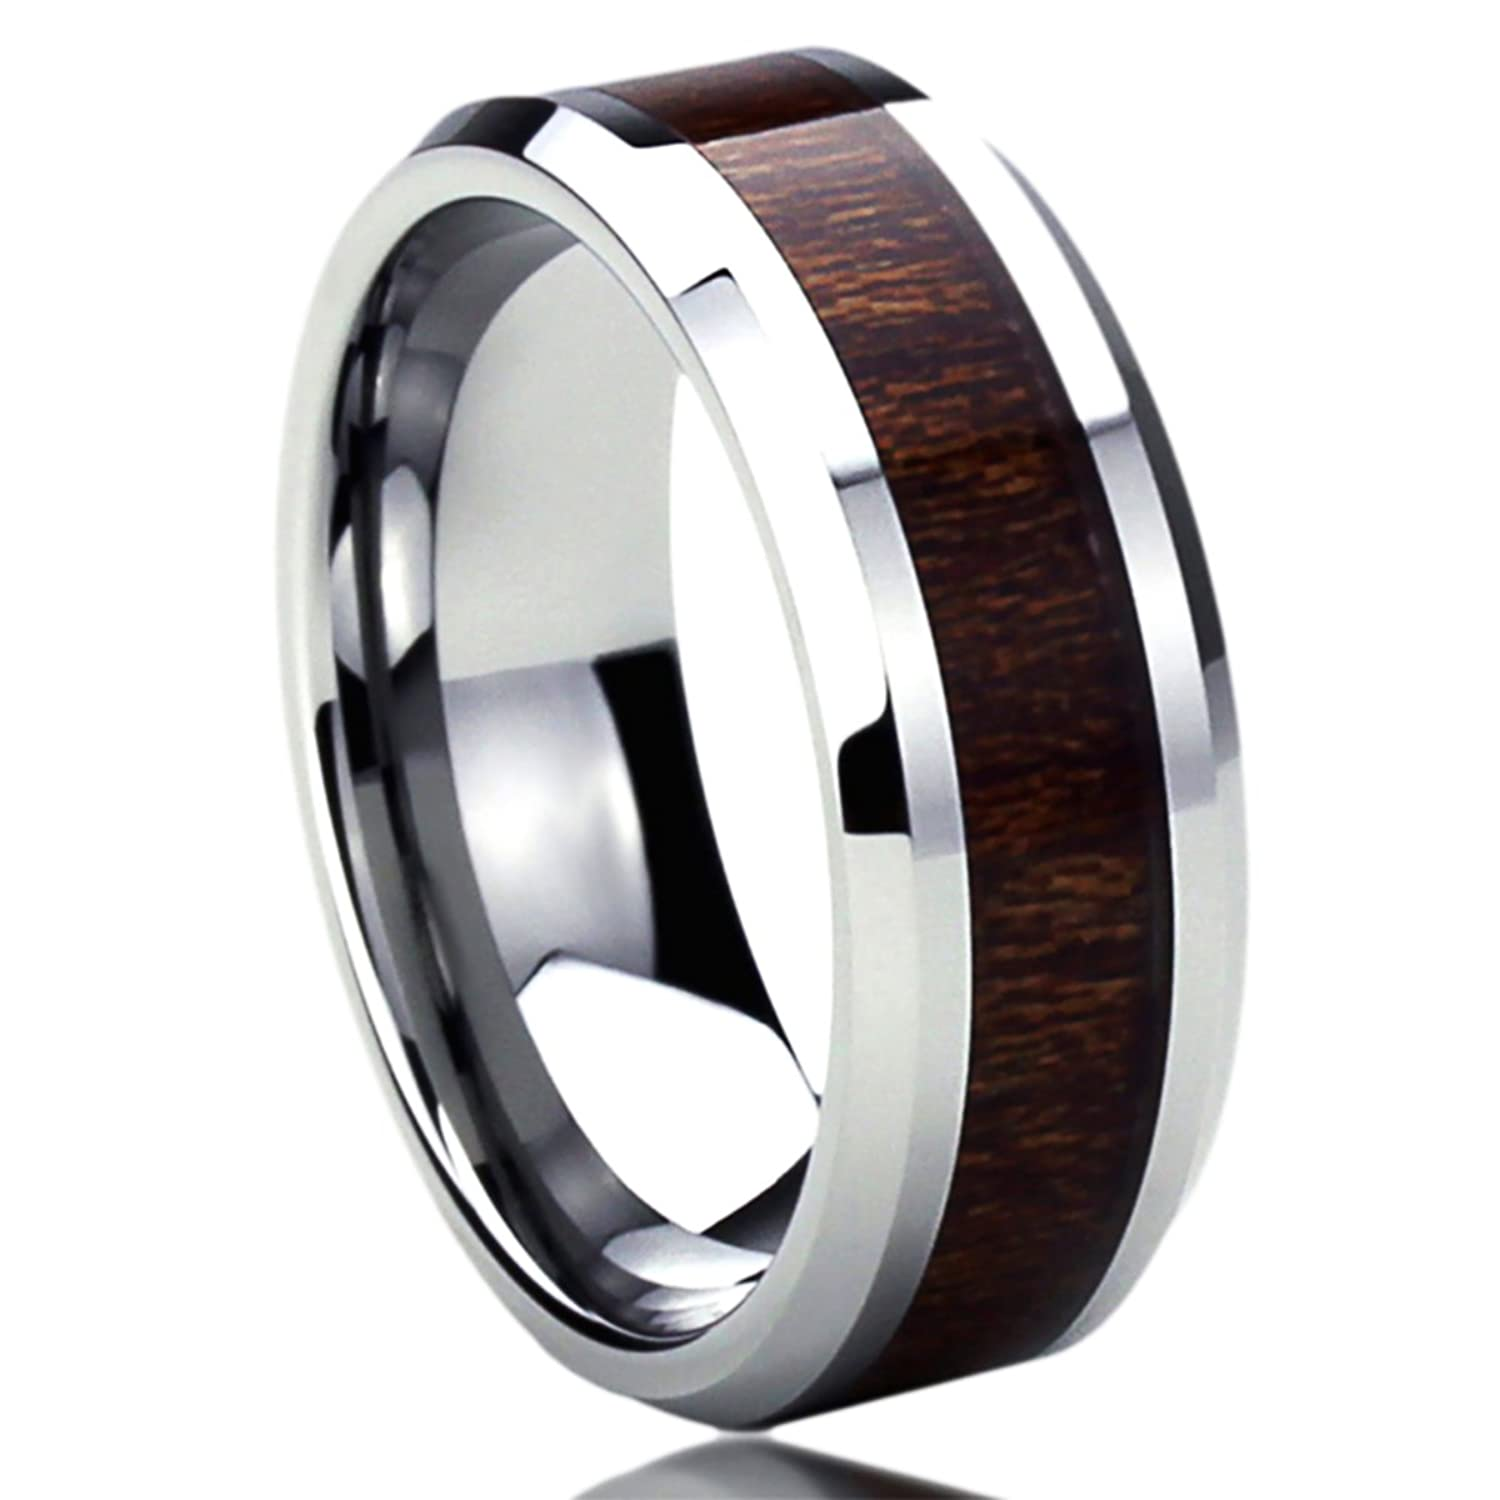 8MM Stainless Steel Mens Womens Rings Wood Grain Inlay fort Fit